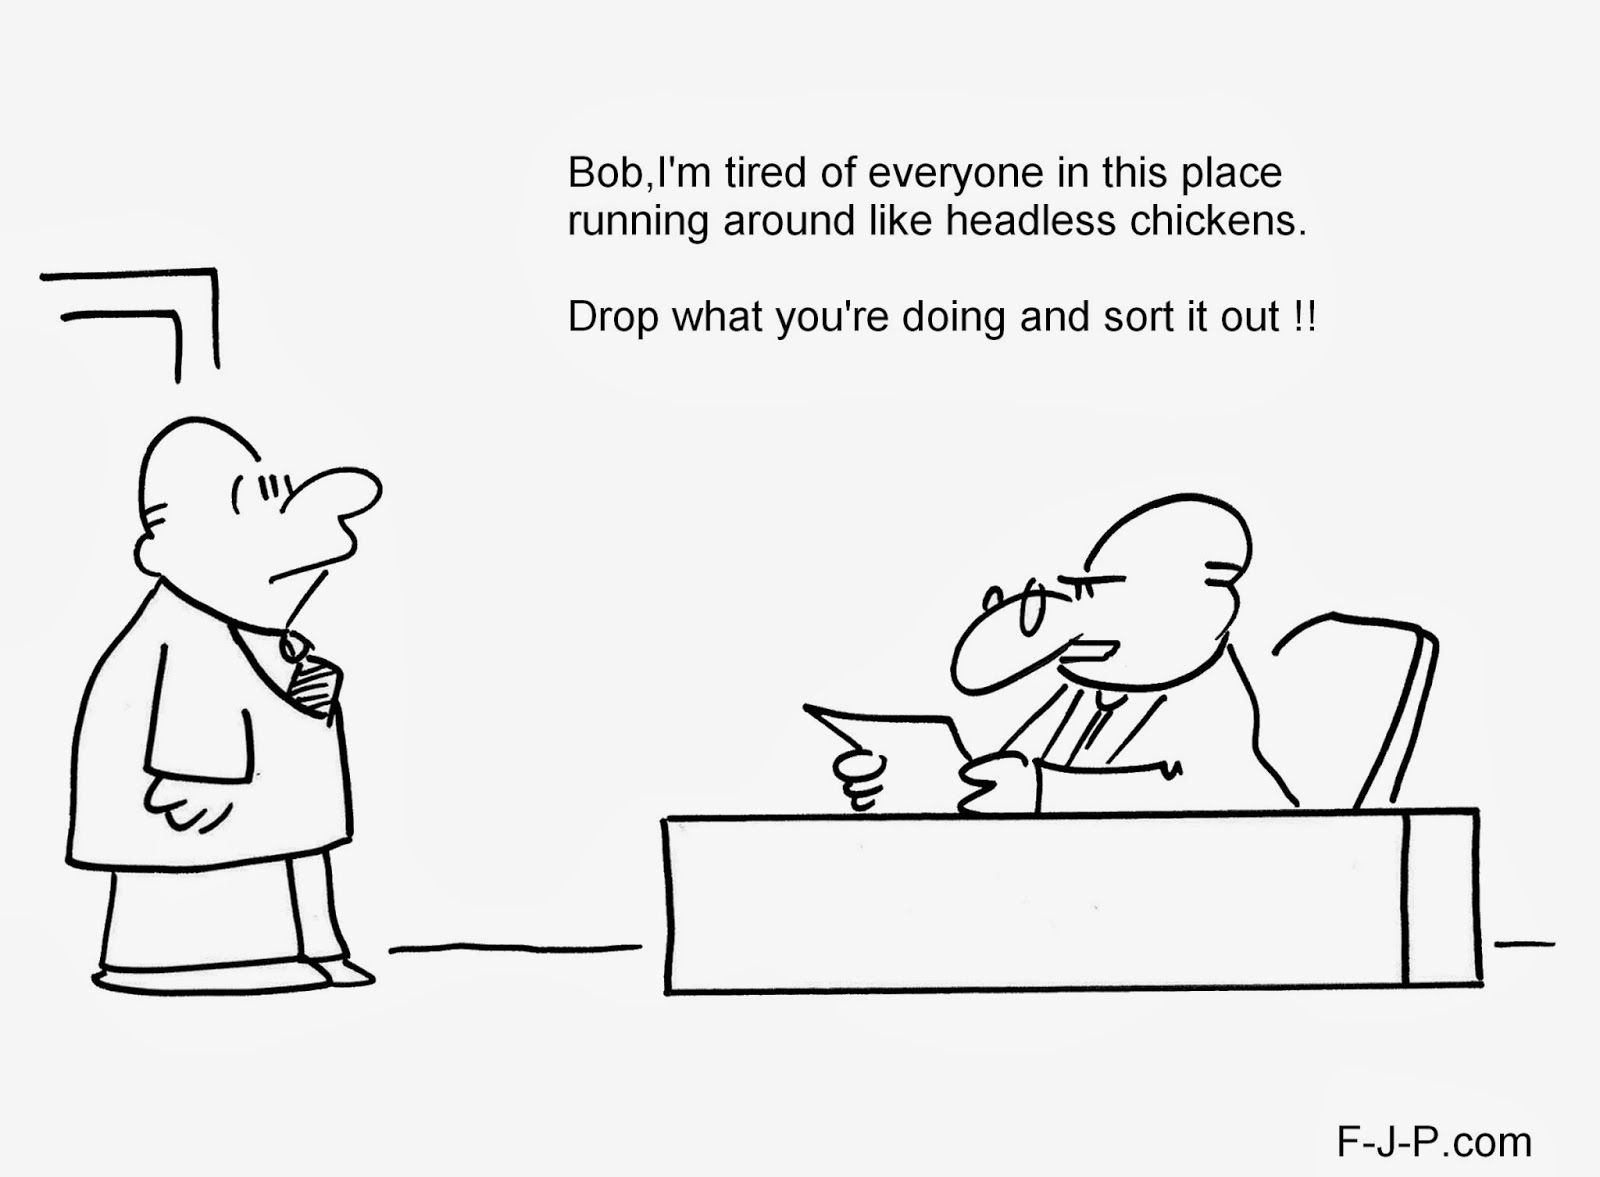 Cartoon Pics And Quotes About Chickens: Funny Headless Chicken Boss Cartoon